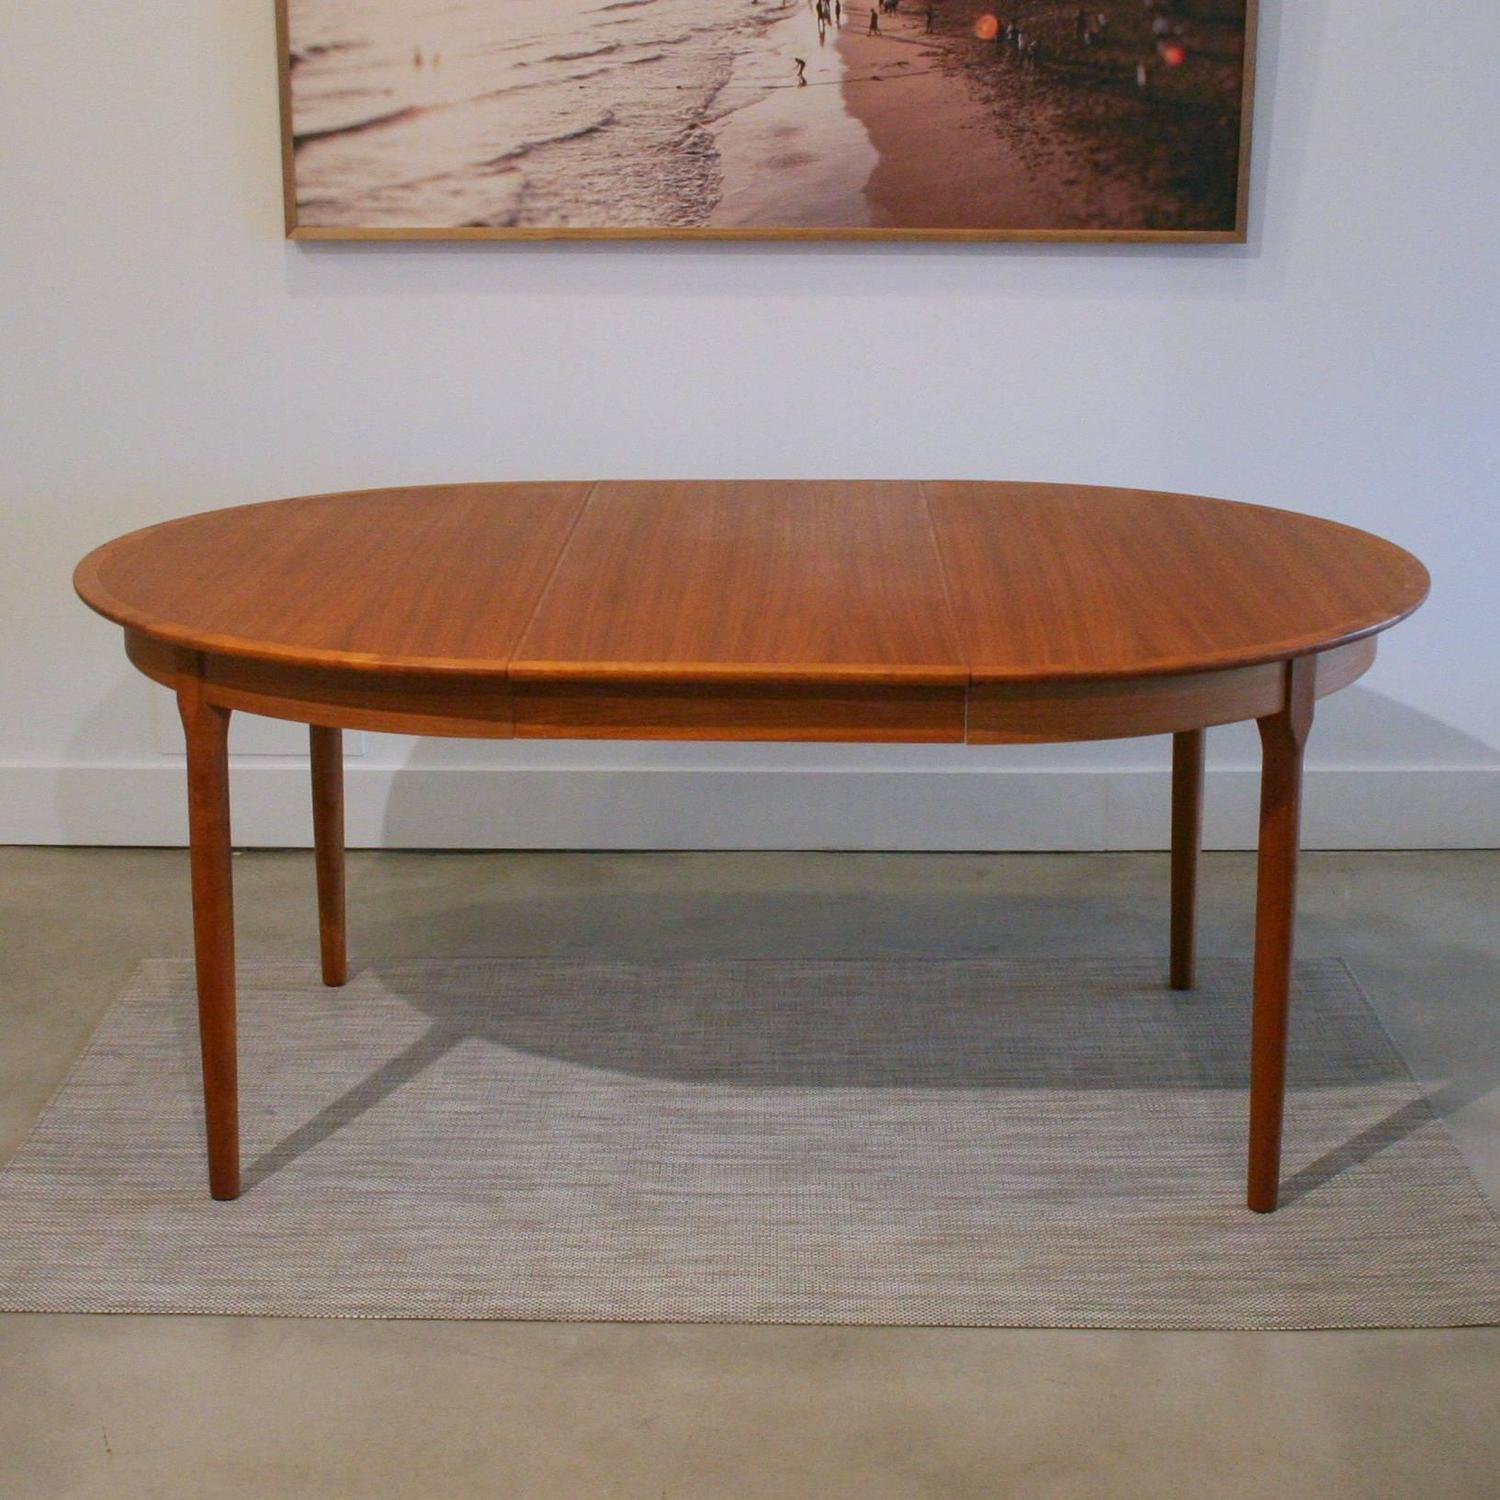 Vintage Danish Teak Round Dining Table at 1stdibs : IMG3557z from www.1stdibs.com size 1500 x 1500 jpeg 203kB